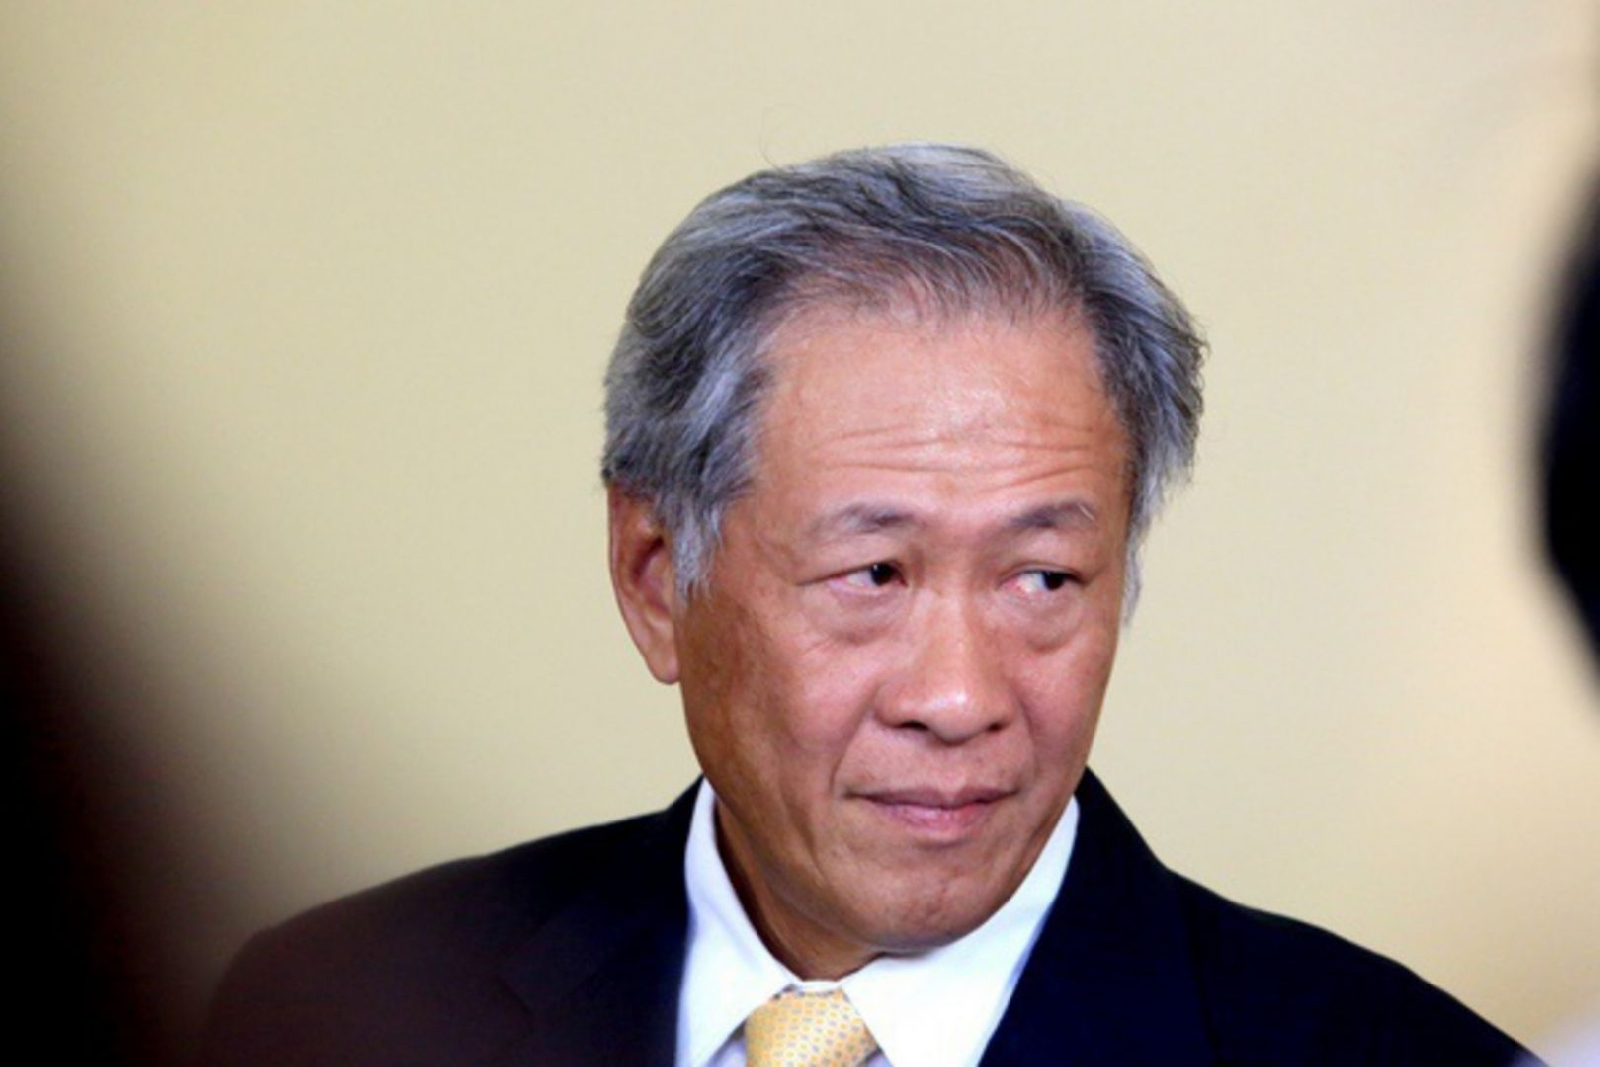 Singapore minister fears crisis in July 12 Hague ruling on South China Seas